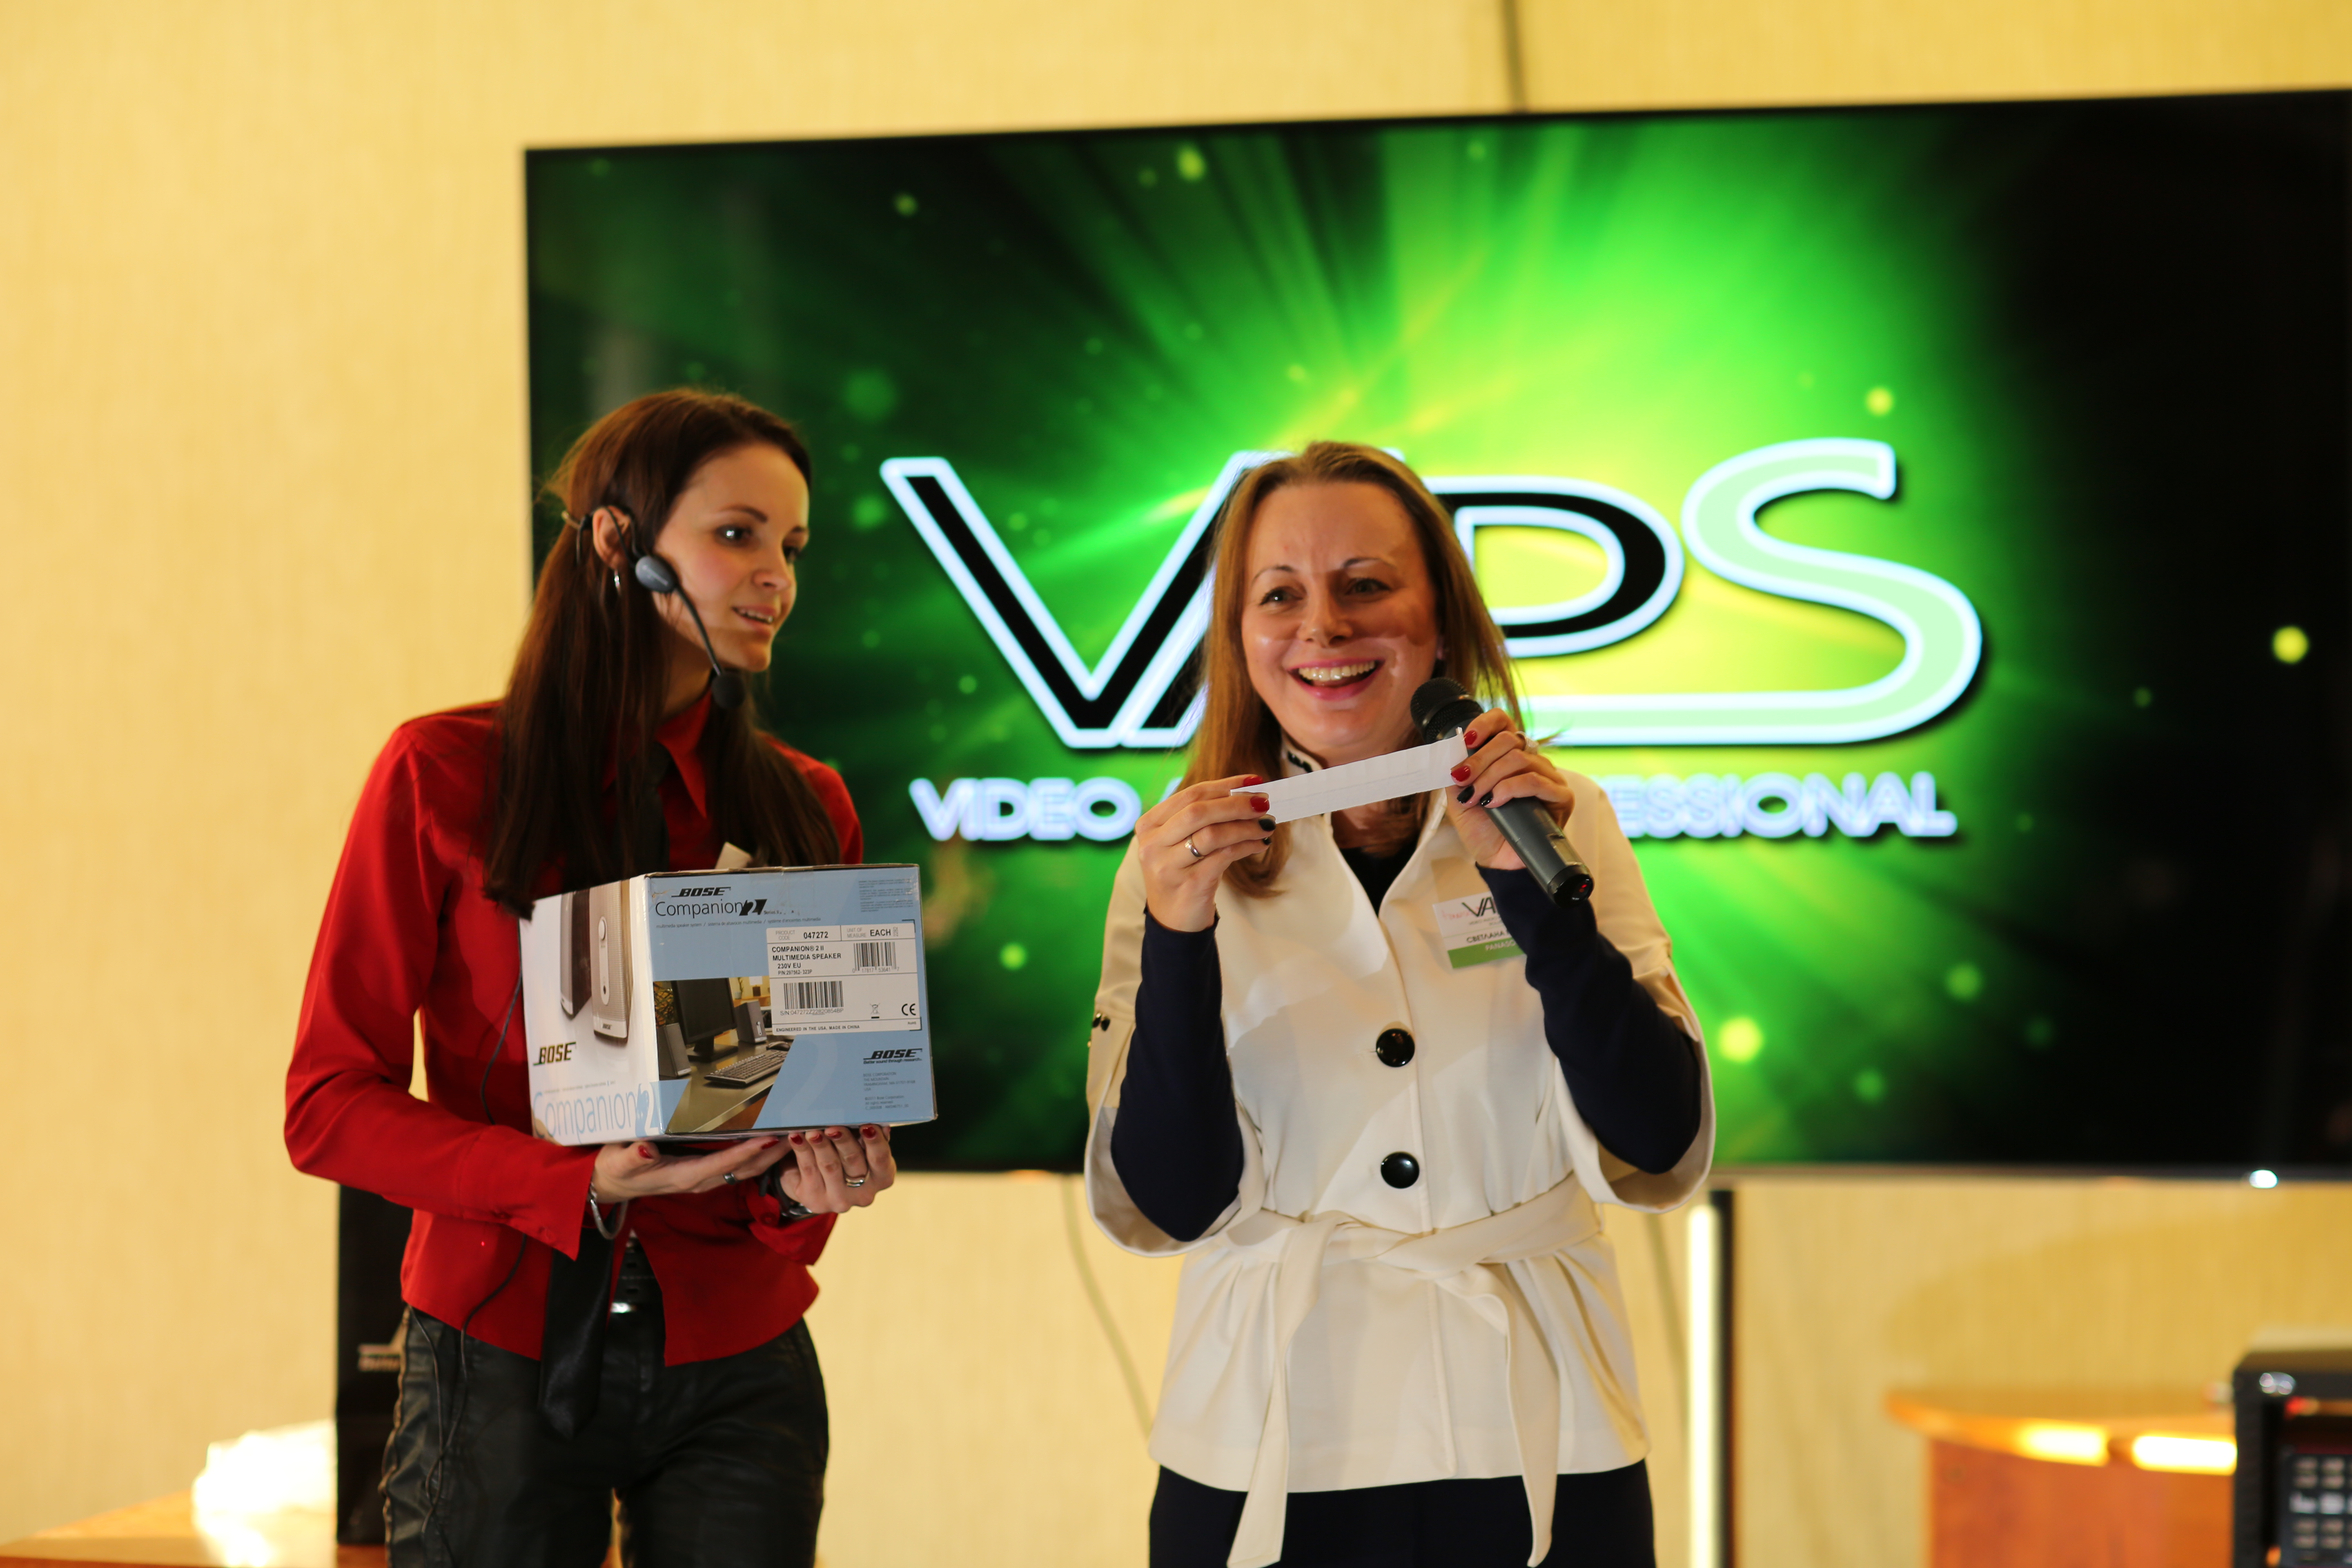 The first VAPS Conference 2014